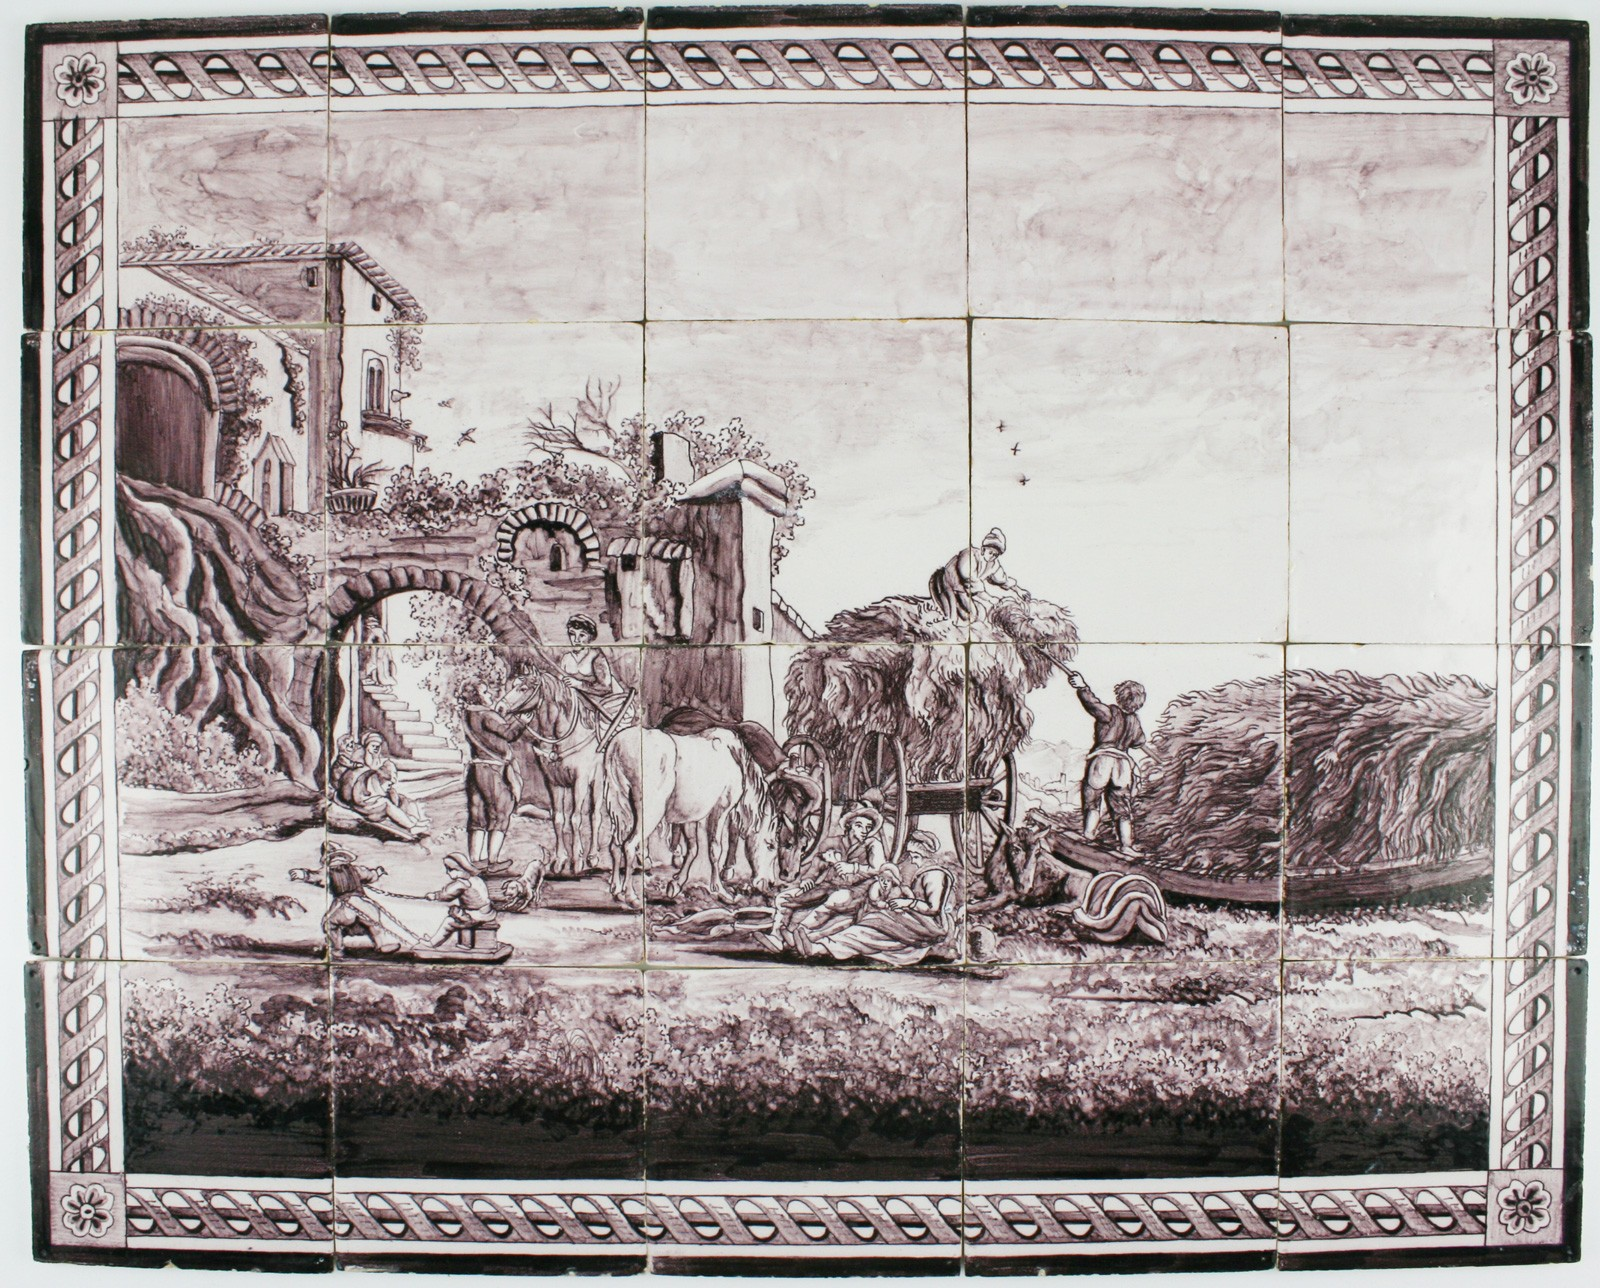 Manganese antique delft tile mural depicting a landscape for Delft tile mural